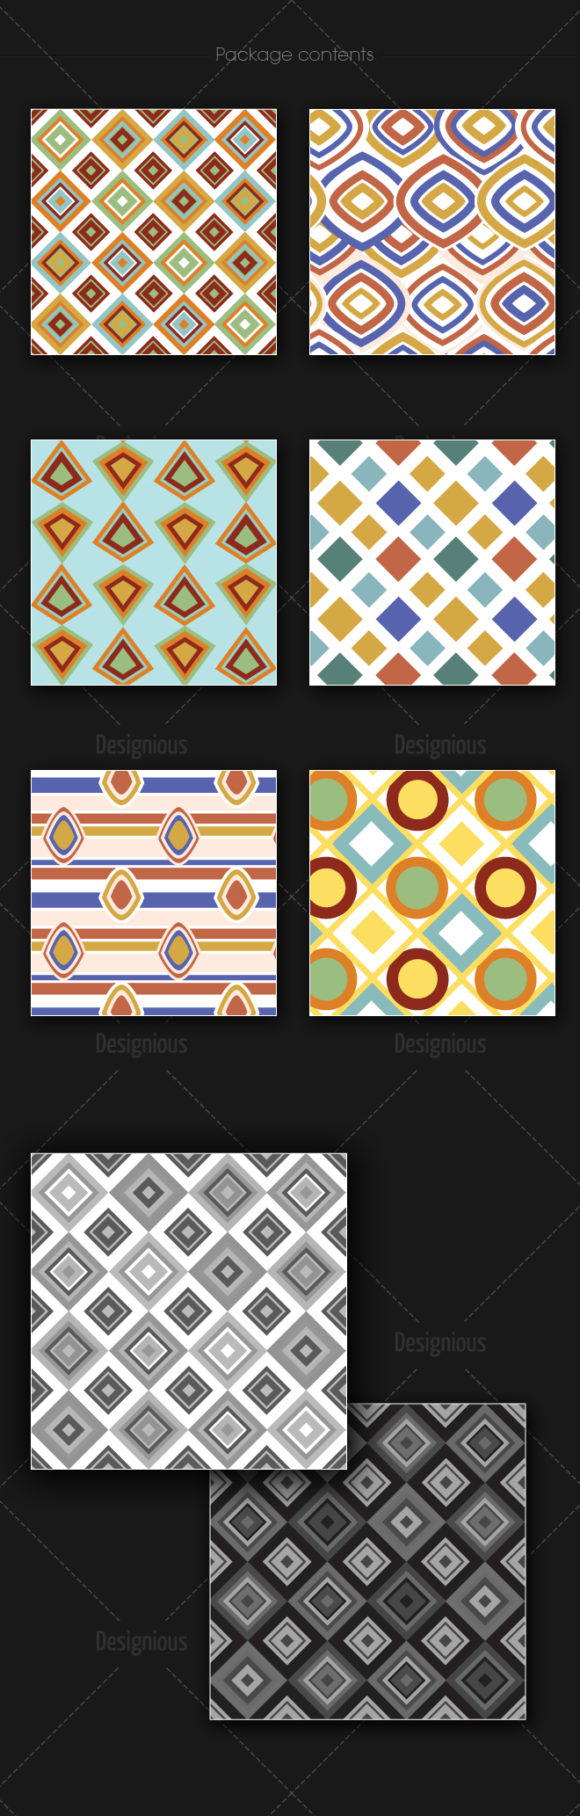 Seamless Patterns Vector Pack 155 products designious vector seamless 155 large